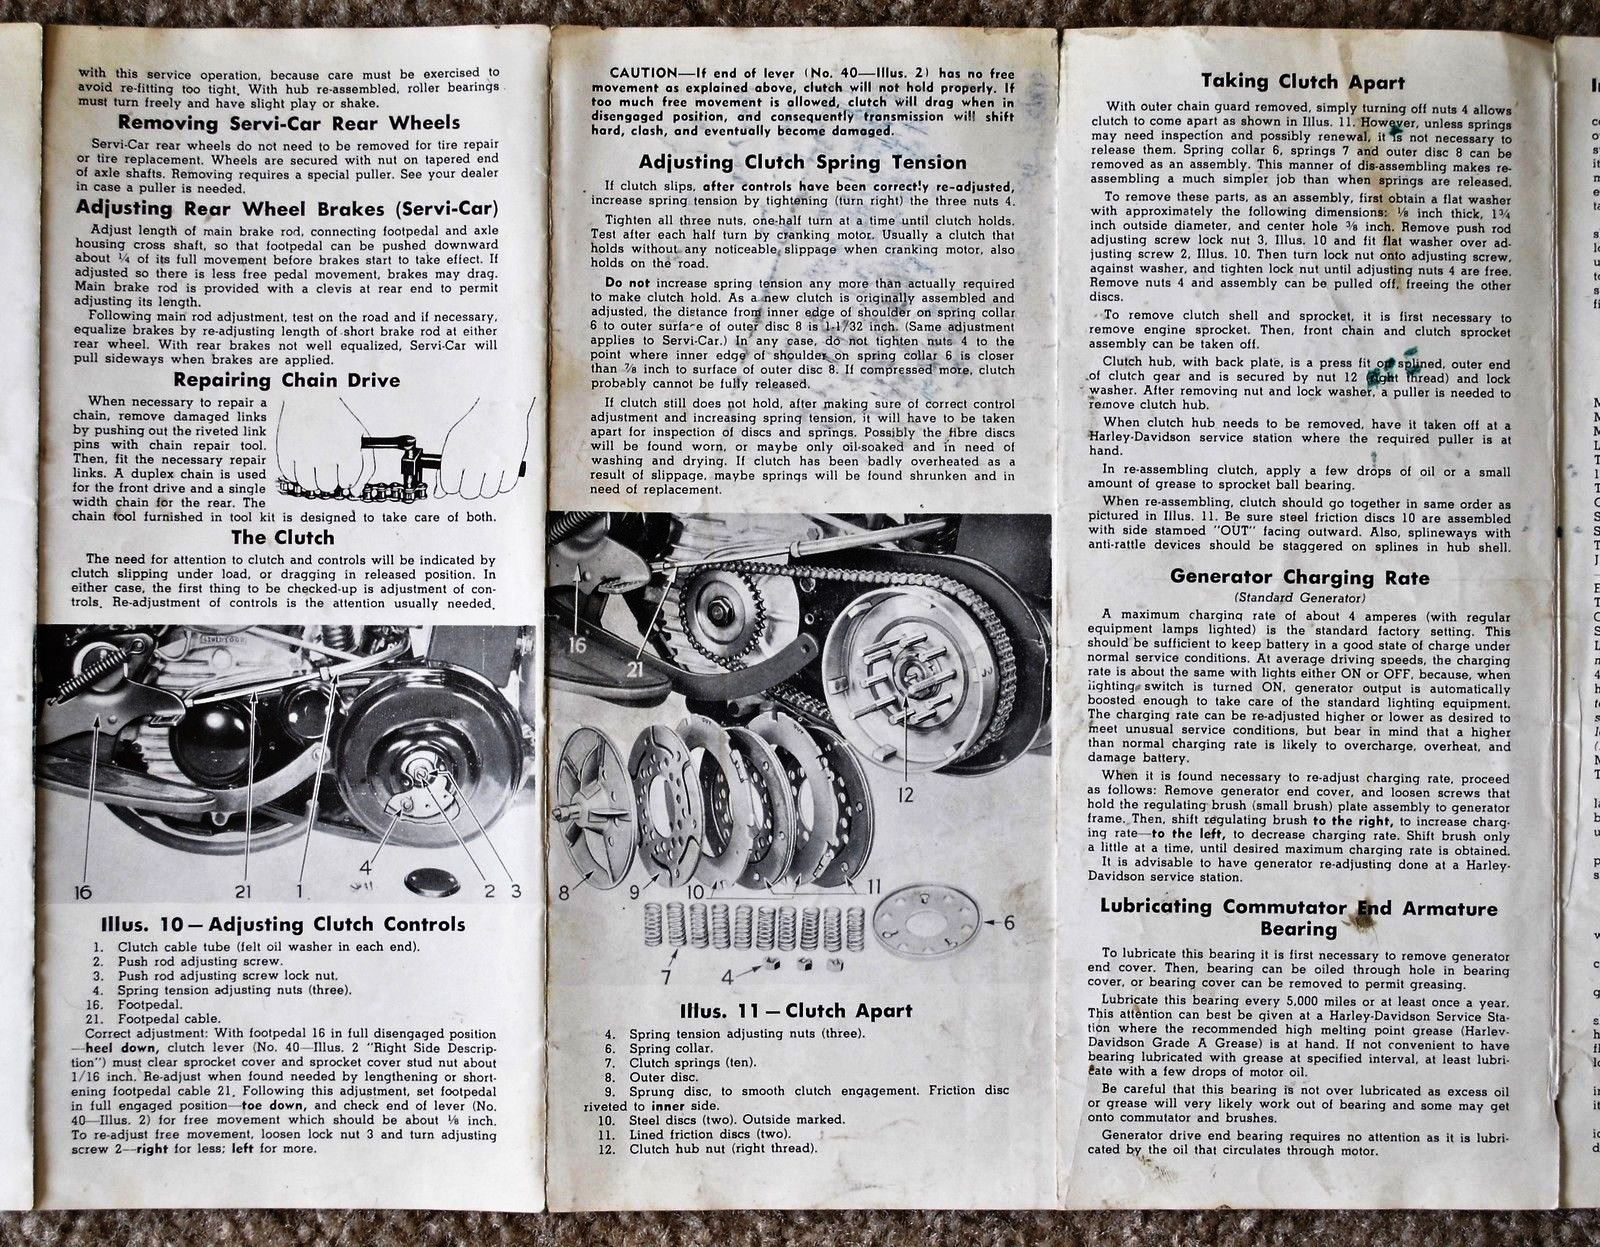 I have managed to purchase an original Harley-Davidson user's manual for a  45. This was a great find - these user manuals are scarce! Here are some  photo's